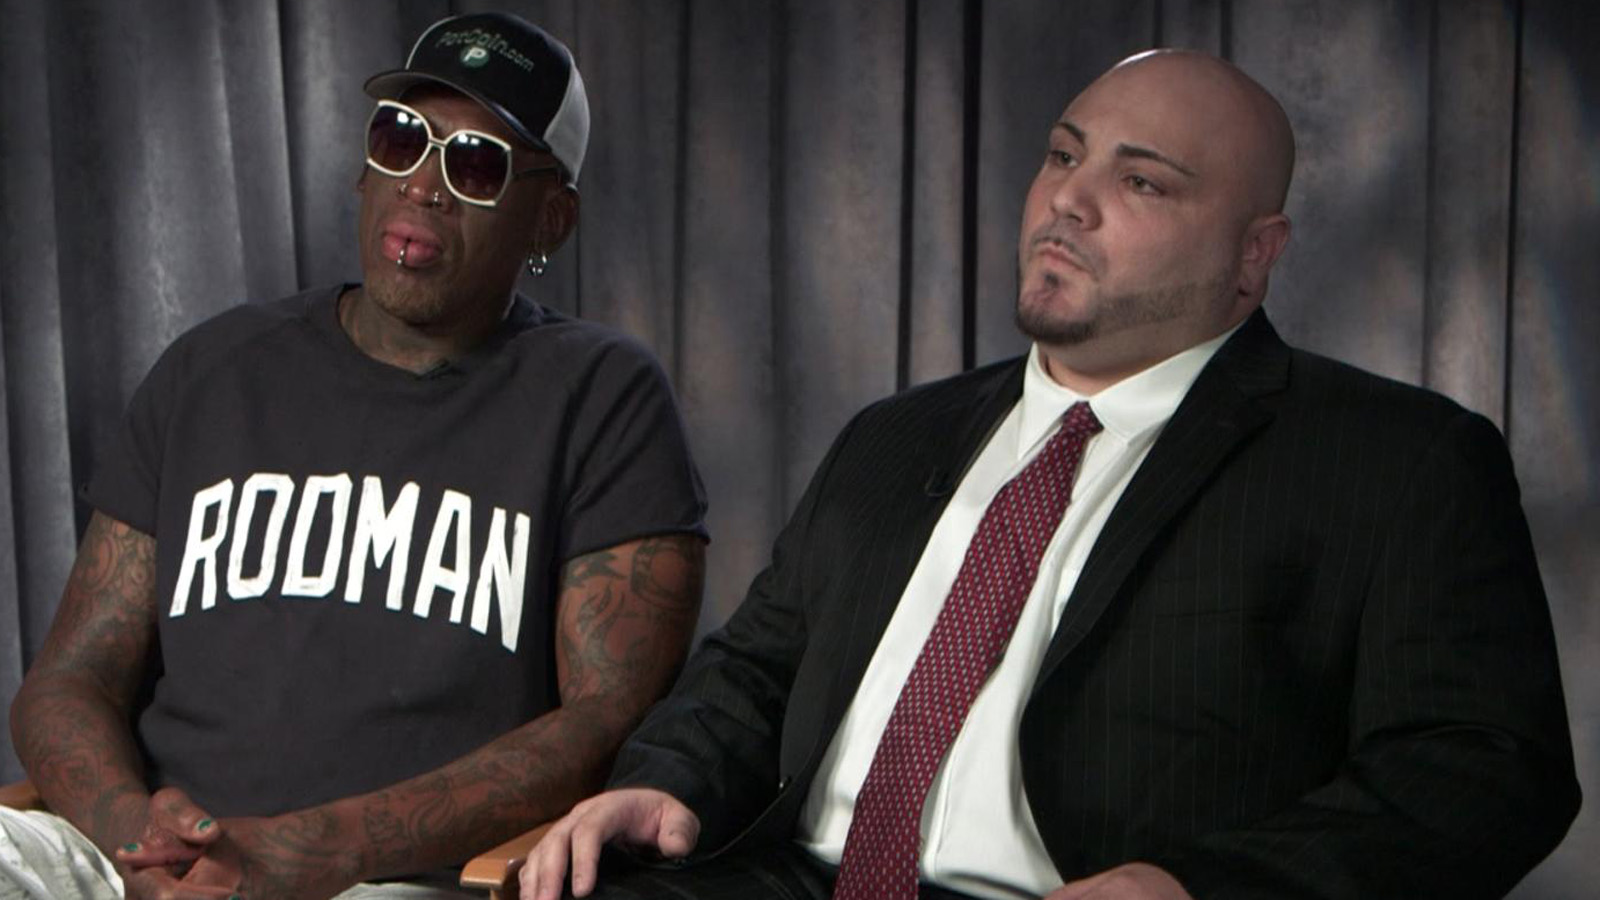 Dennis Rodman Videos at ABC News Video Archive at abcnews